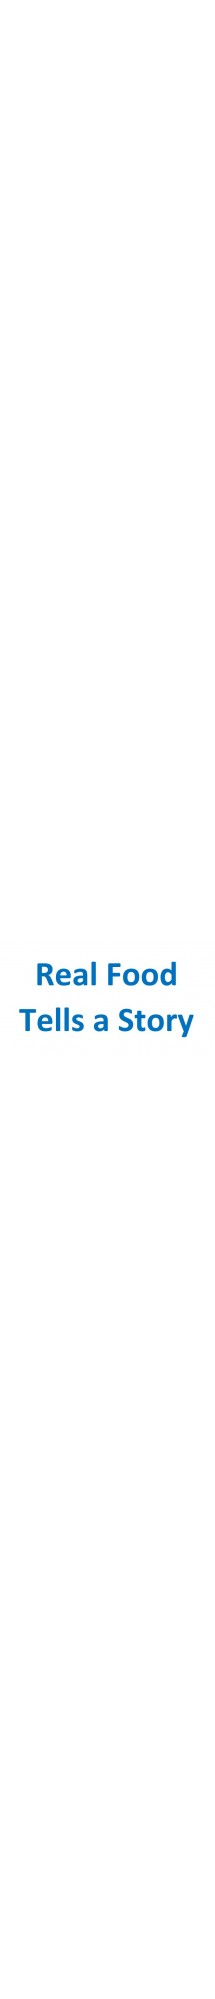 Real Food Tells a Story